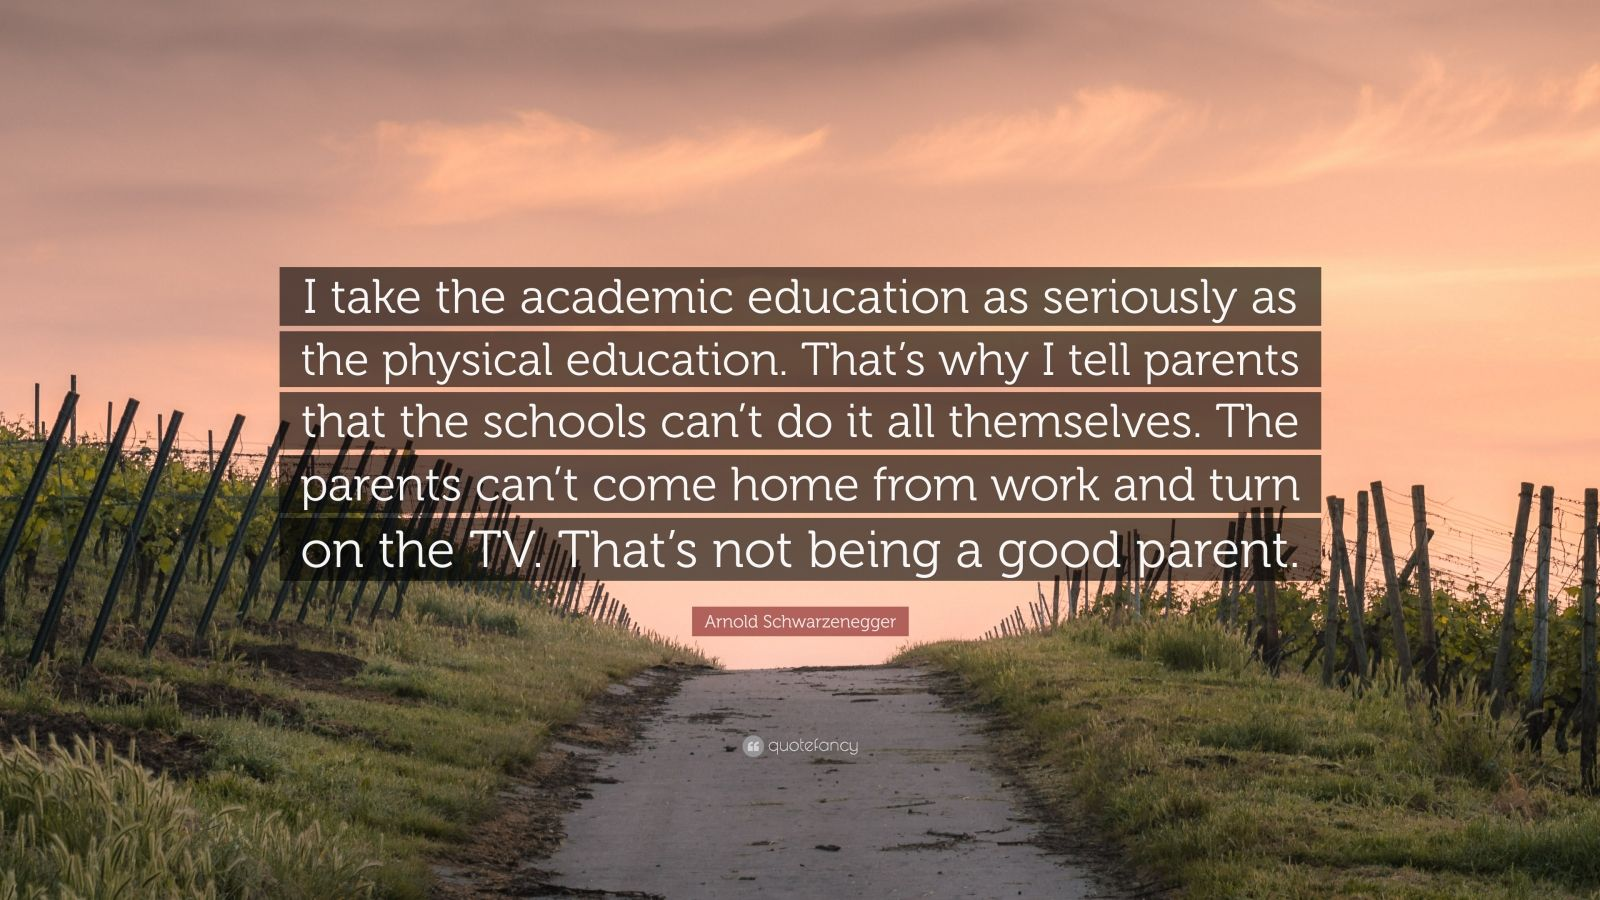 "Arnold Schwarzenegger Quote: ""I take the academic education as seriously as the physical education. That's why I tell parents that the schools can't do it all themselves. The parents can't come home from work and turn on the TV. That's not being a good parent."""